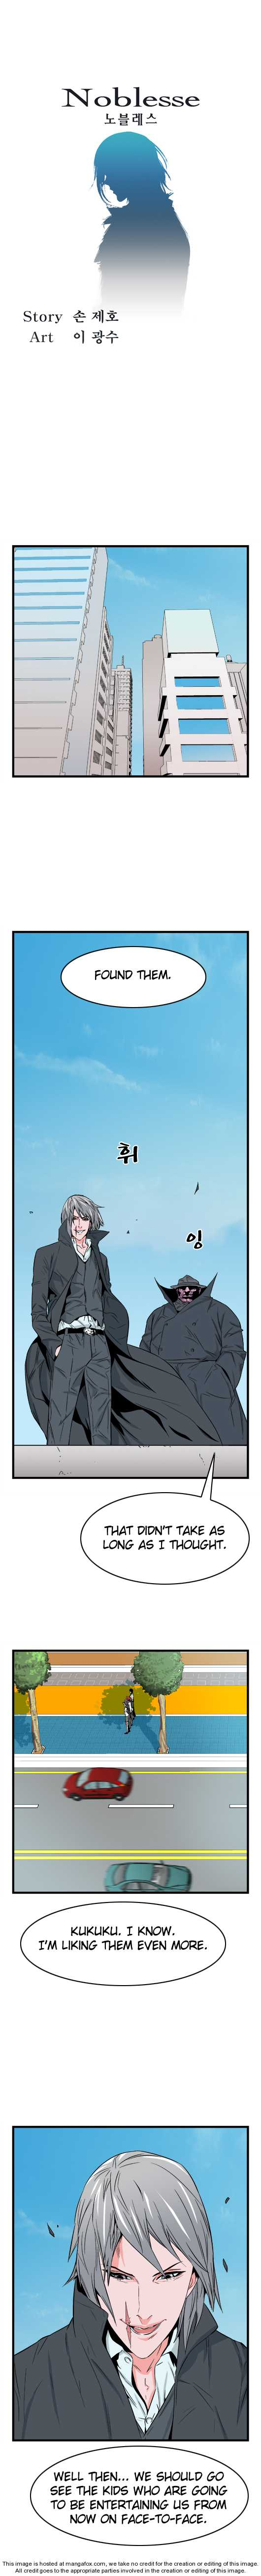 Noblesse 22 Page 1